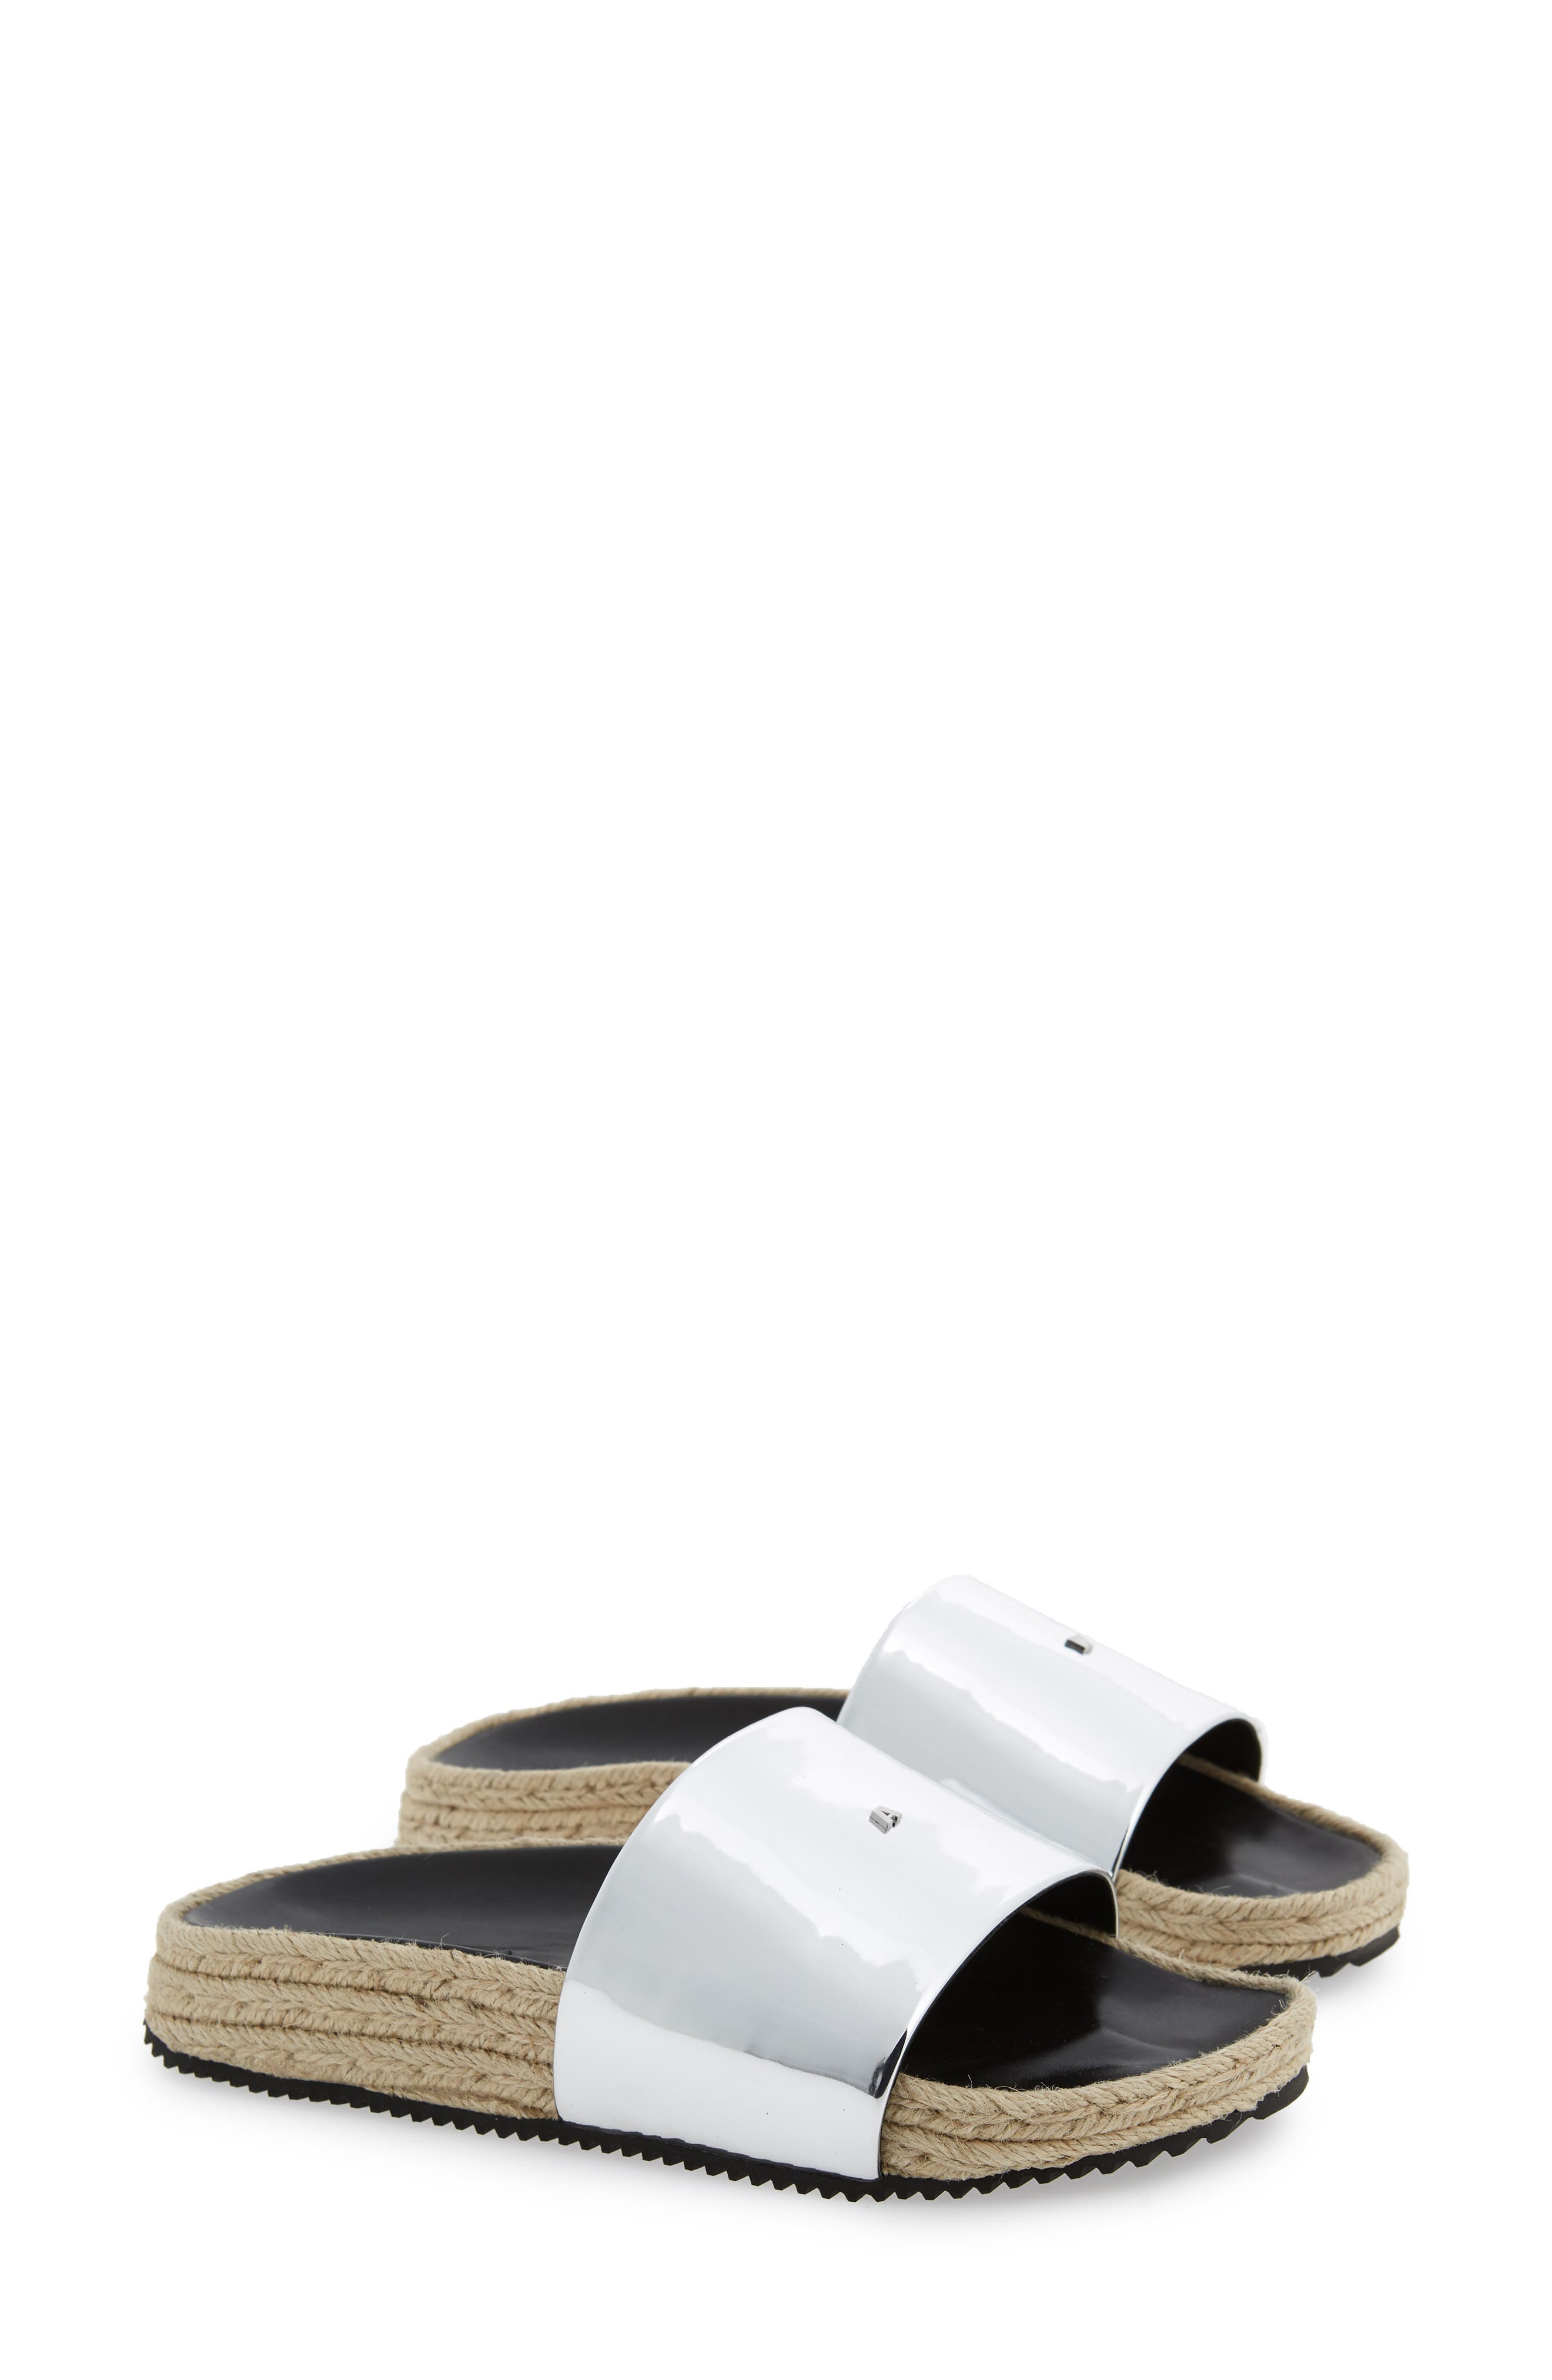 Suki Espadrille Slide Sandal,                             Alternate thumbnail 2, color,                             043